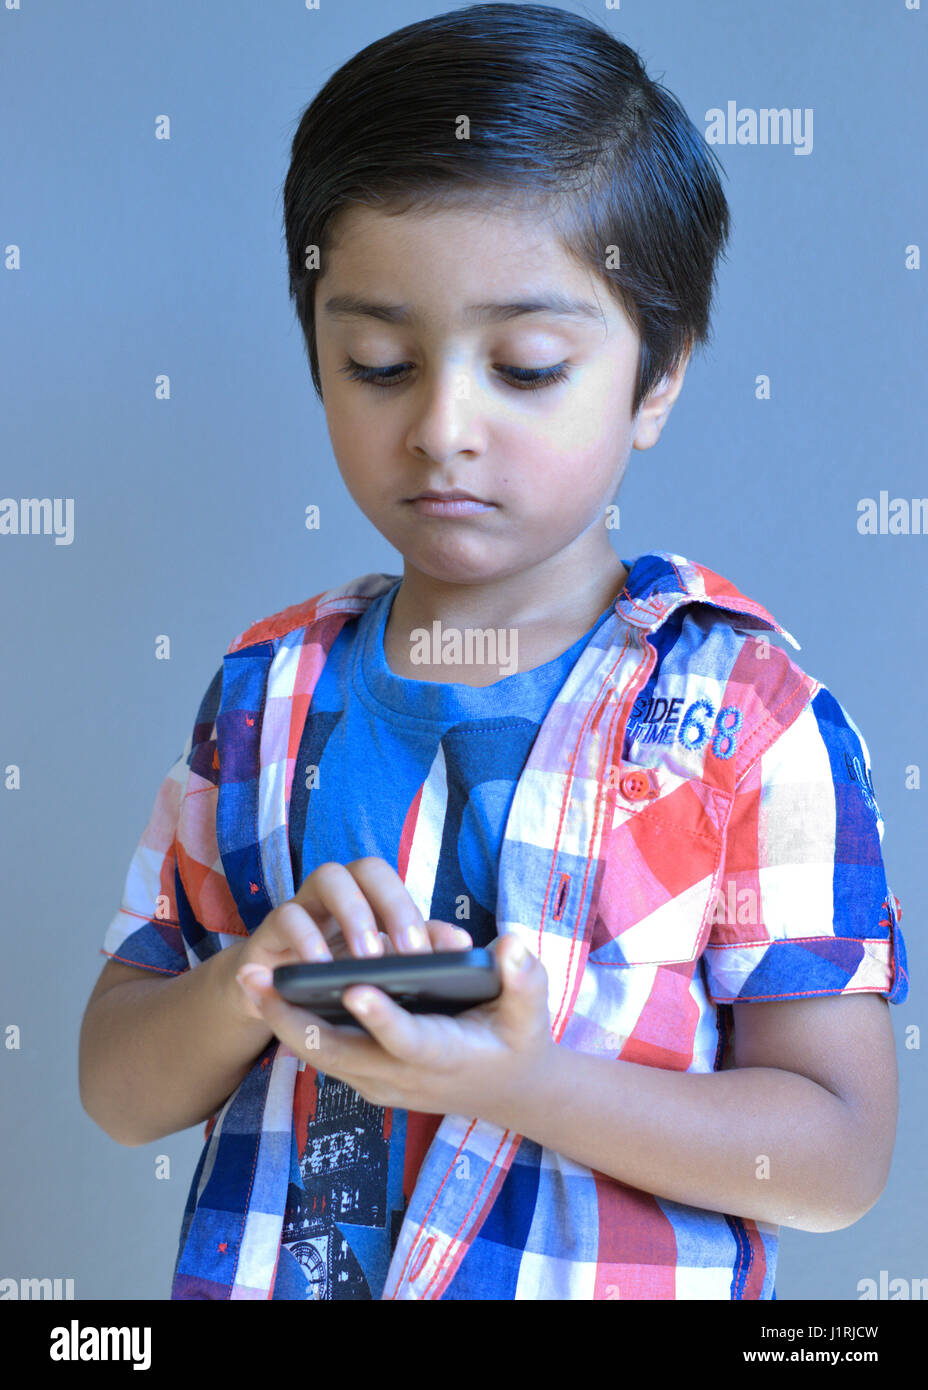 Kid with mobile phone. Kid with cell phone. Kid using mobile. Child tapping on mobile phone. - Stock Image